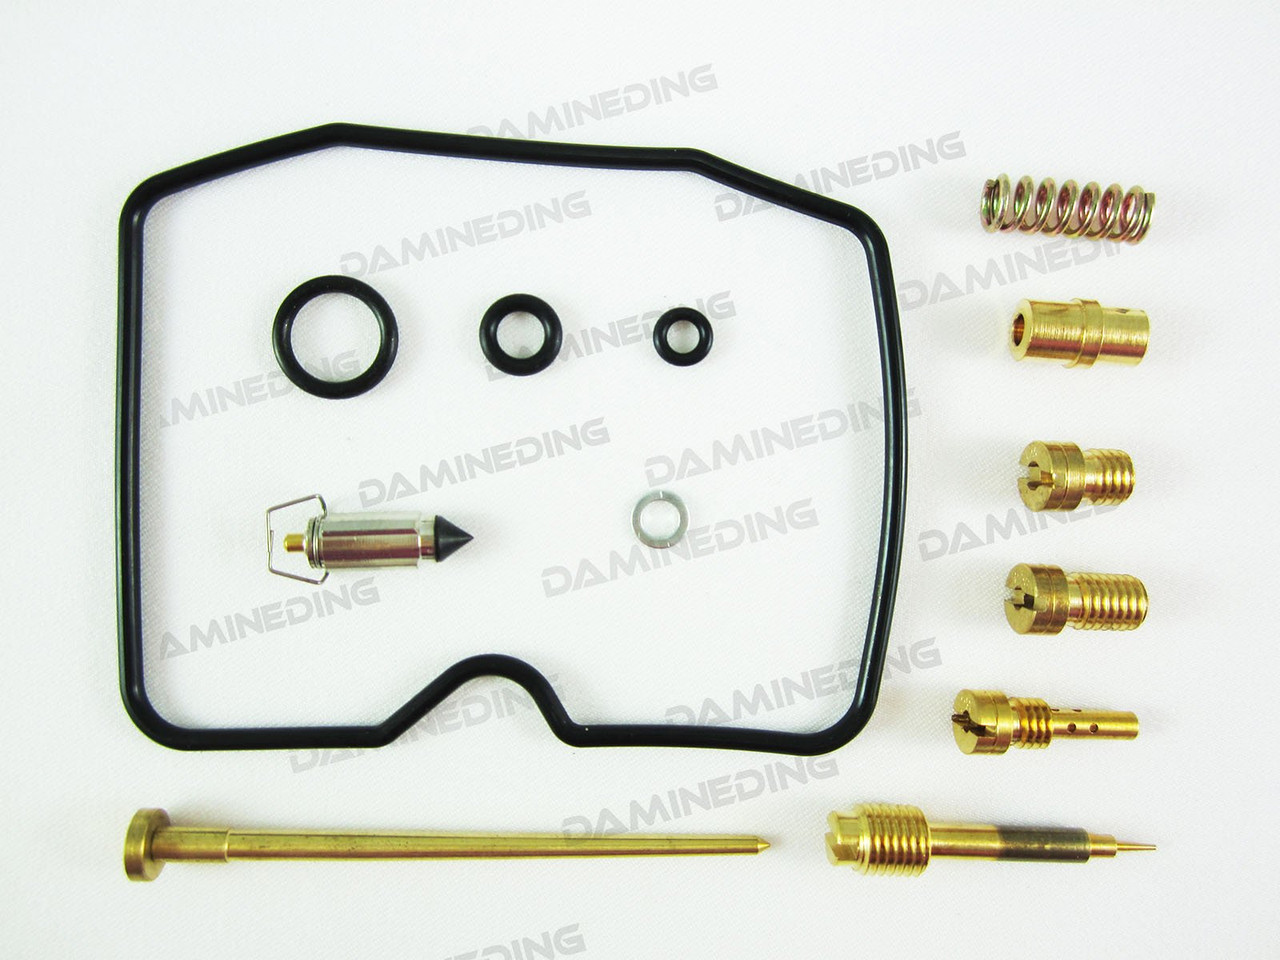 New Carburetor Repair Kit  For Kawasaki Bayou KLF400 1993-1995  Carb Kit